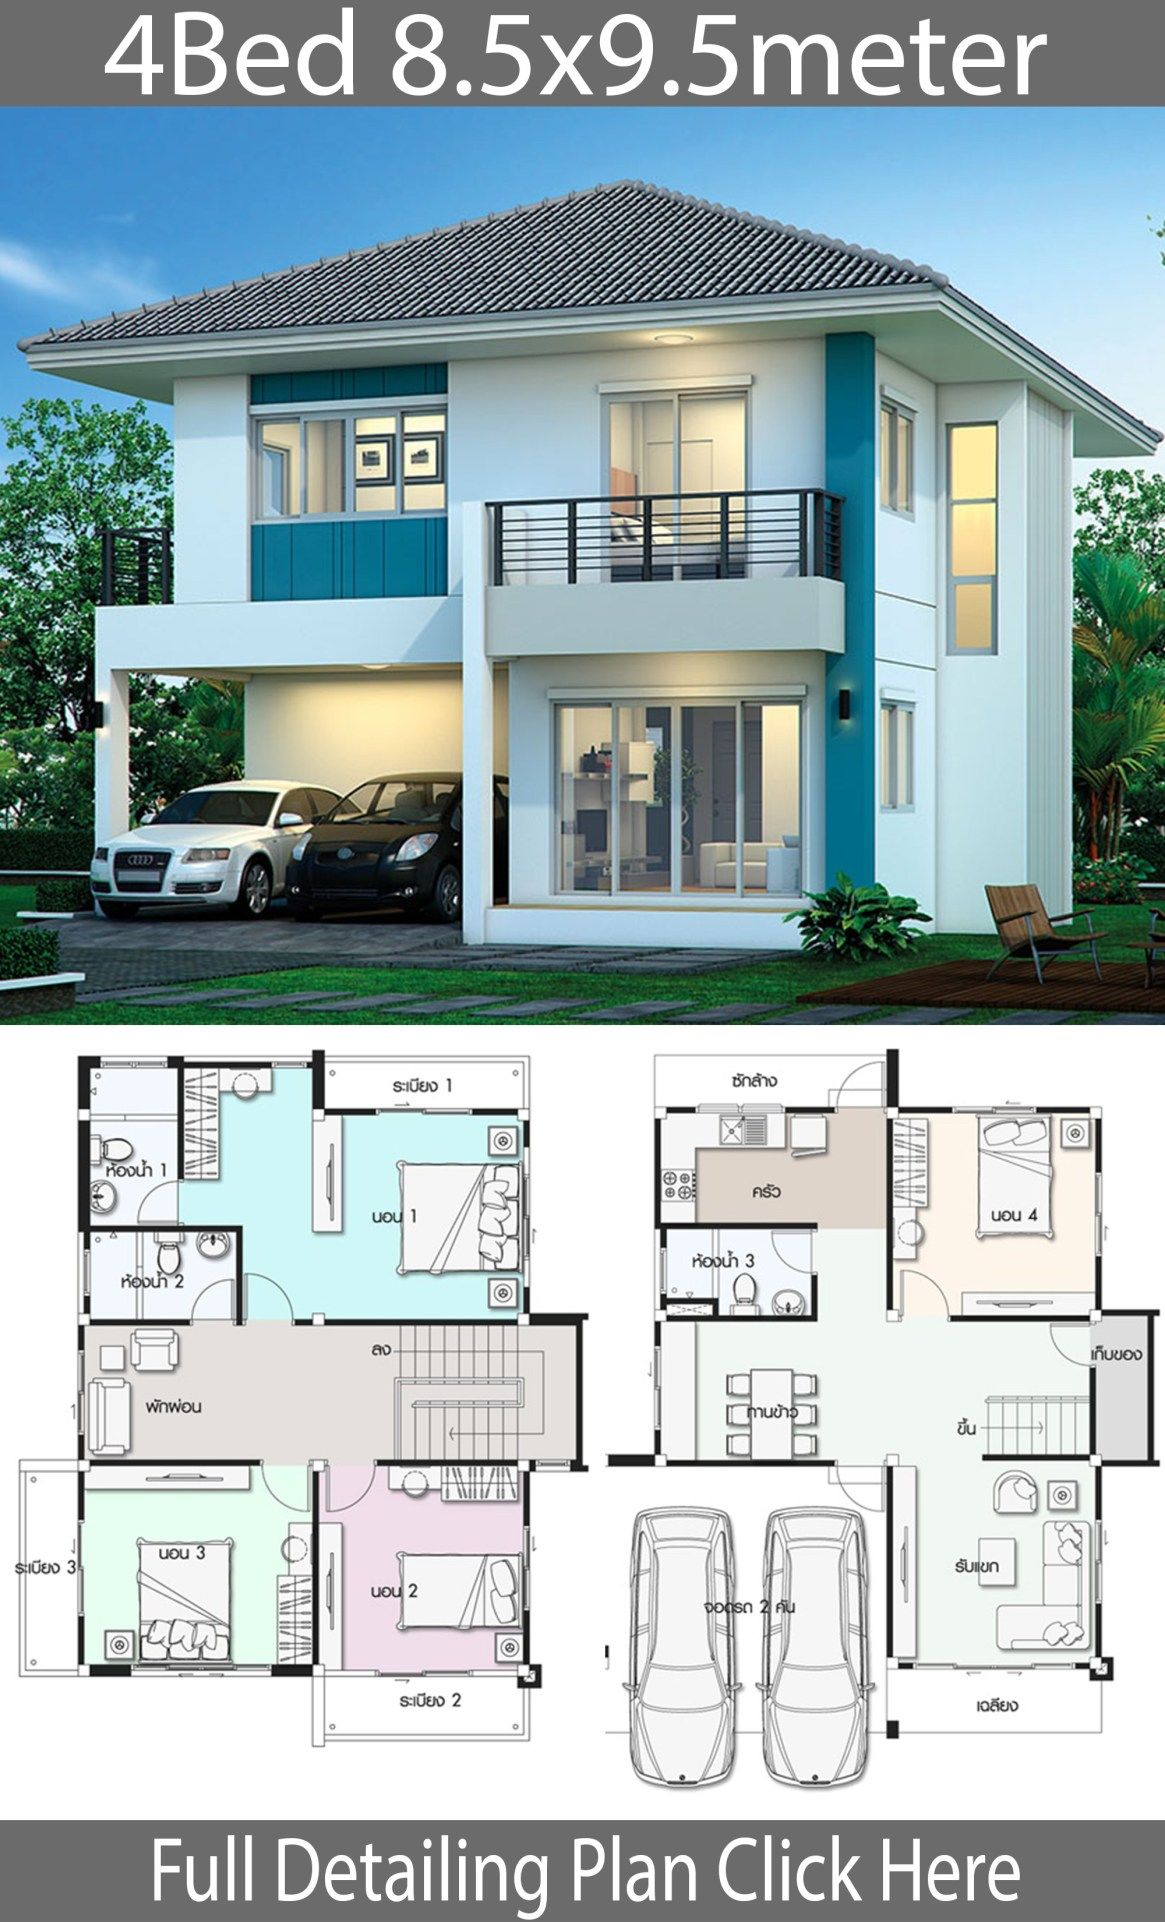 House Design Plan 8 5x9 5m With 4 Bedrooms Small House Design Exterior House Designs Exterior 2 Storey House Design